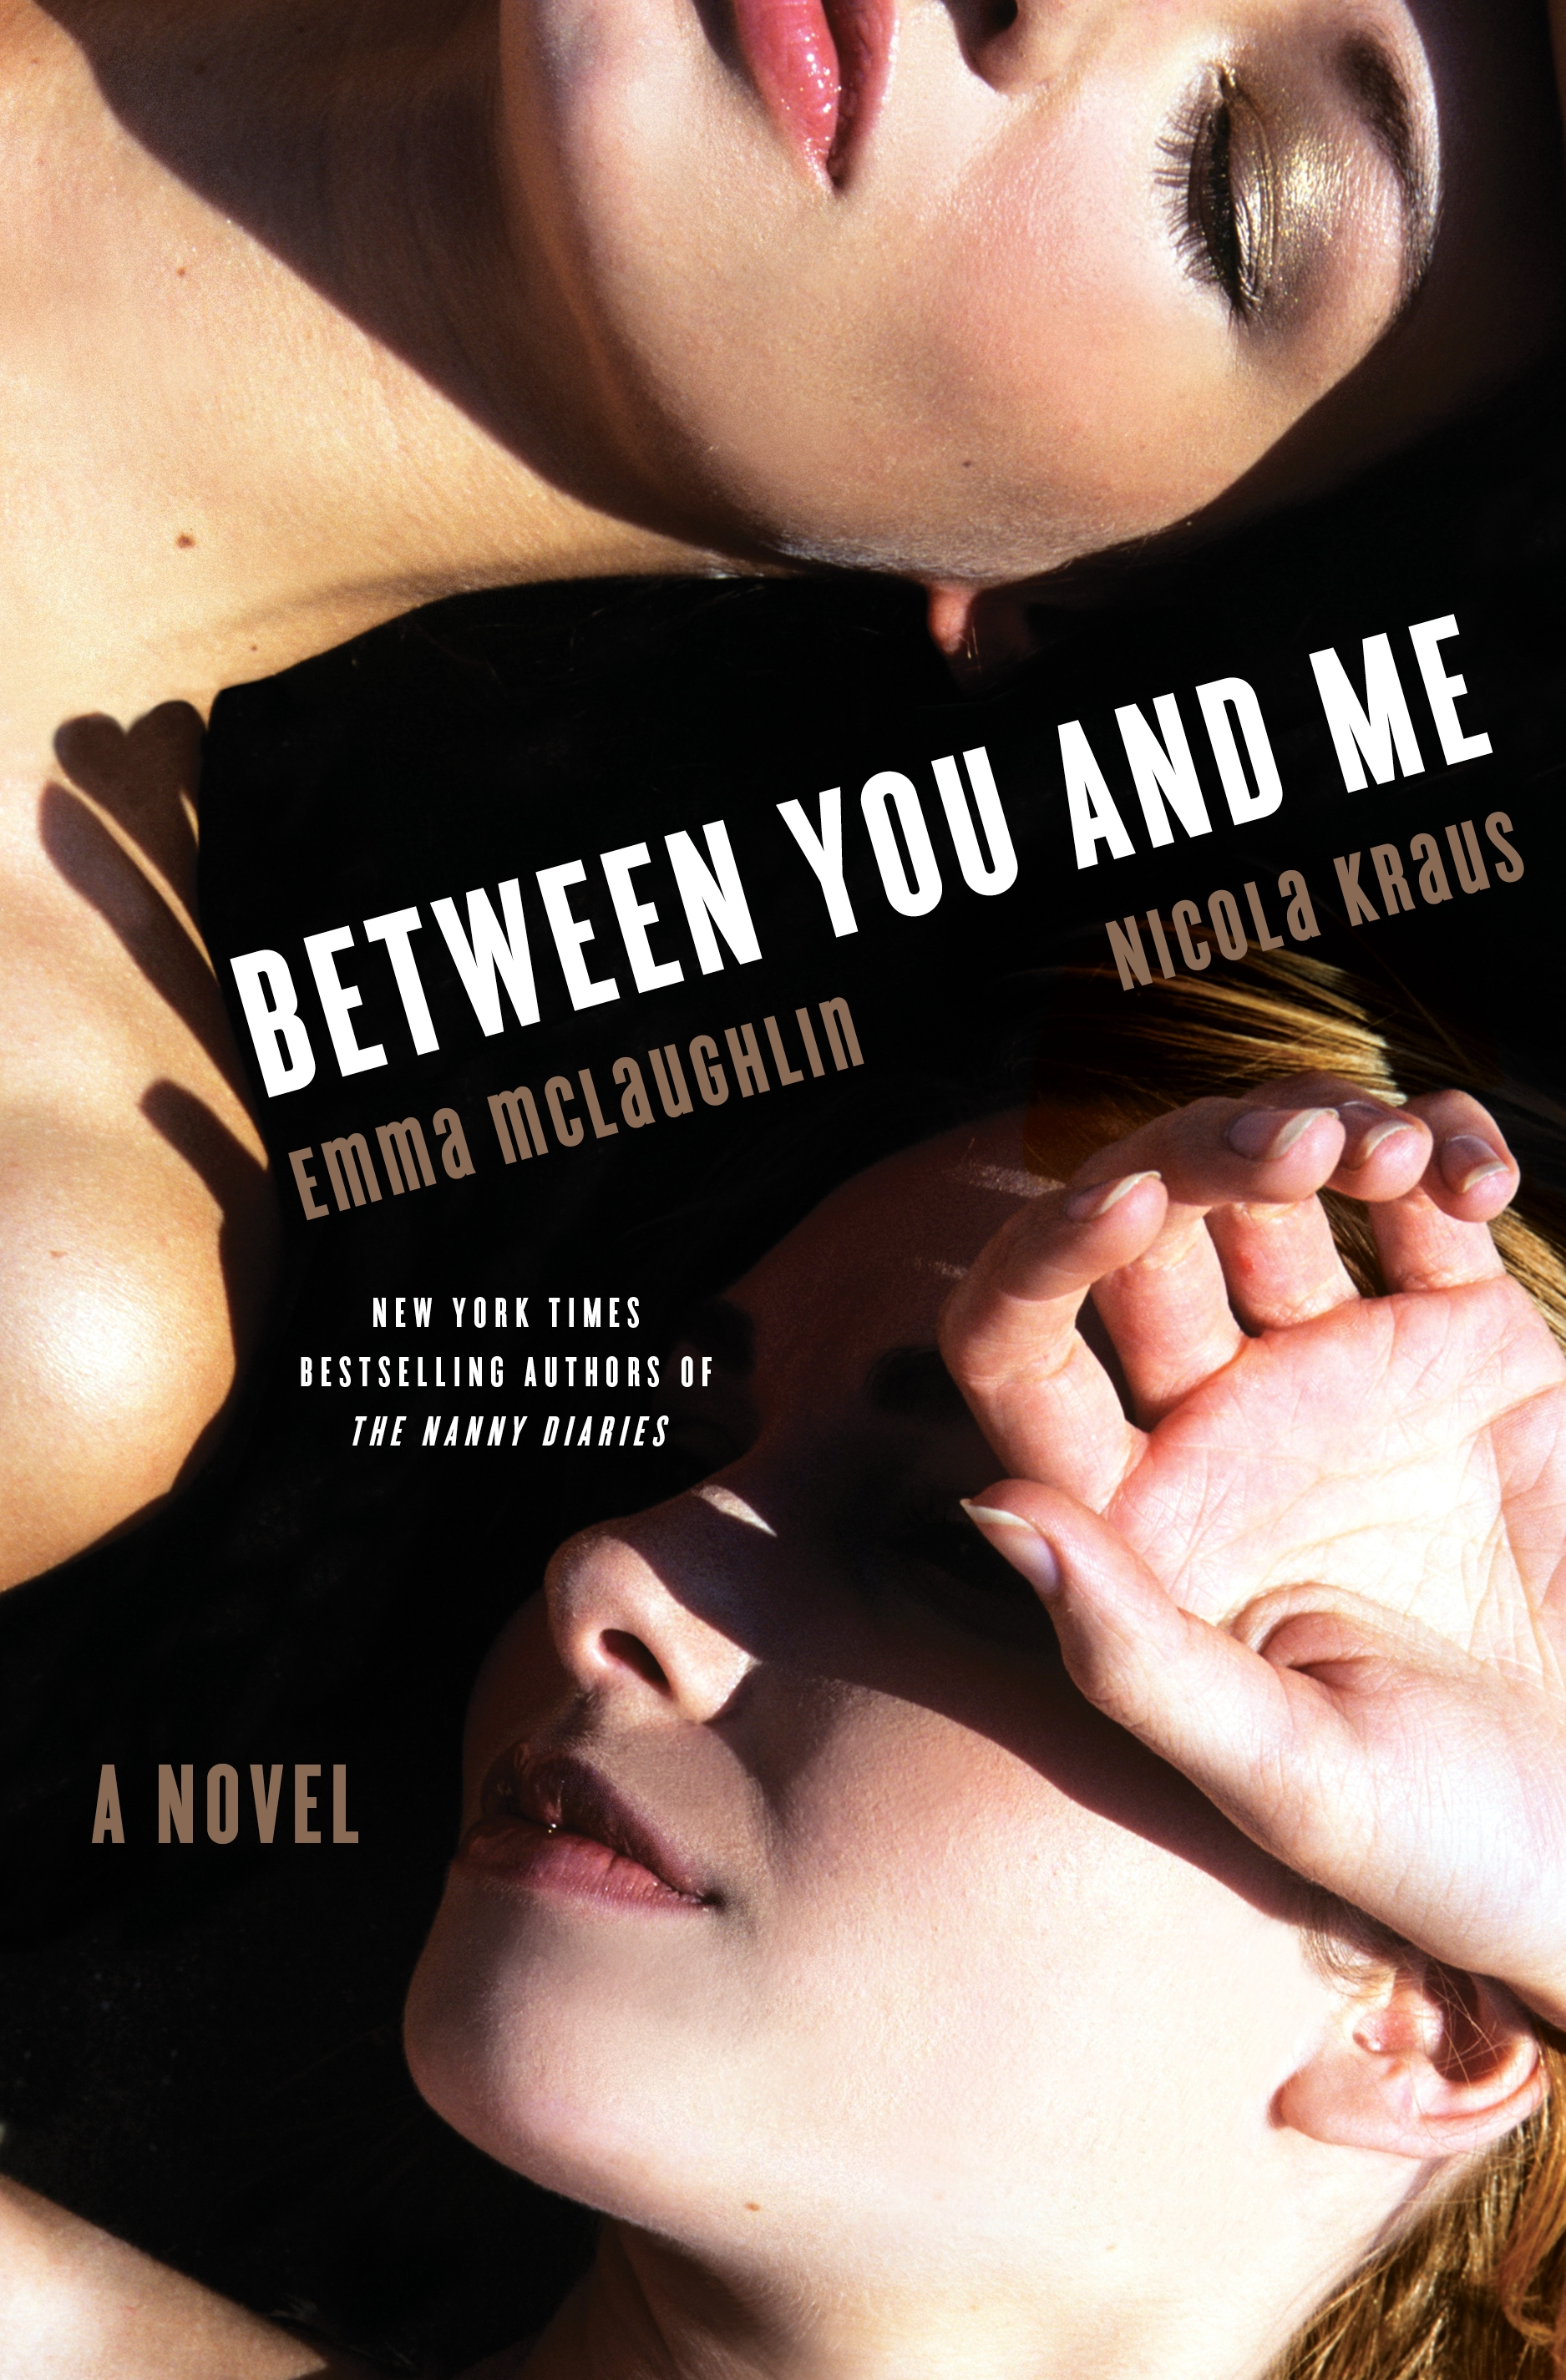 Between You and Me by Emma McLaughlin and Nicola Kraus